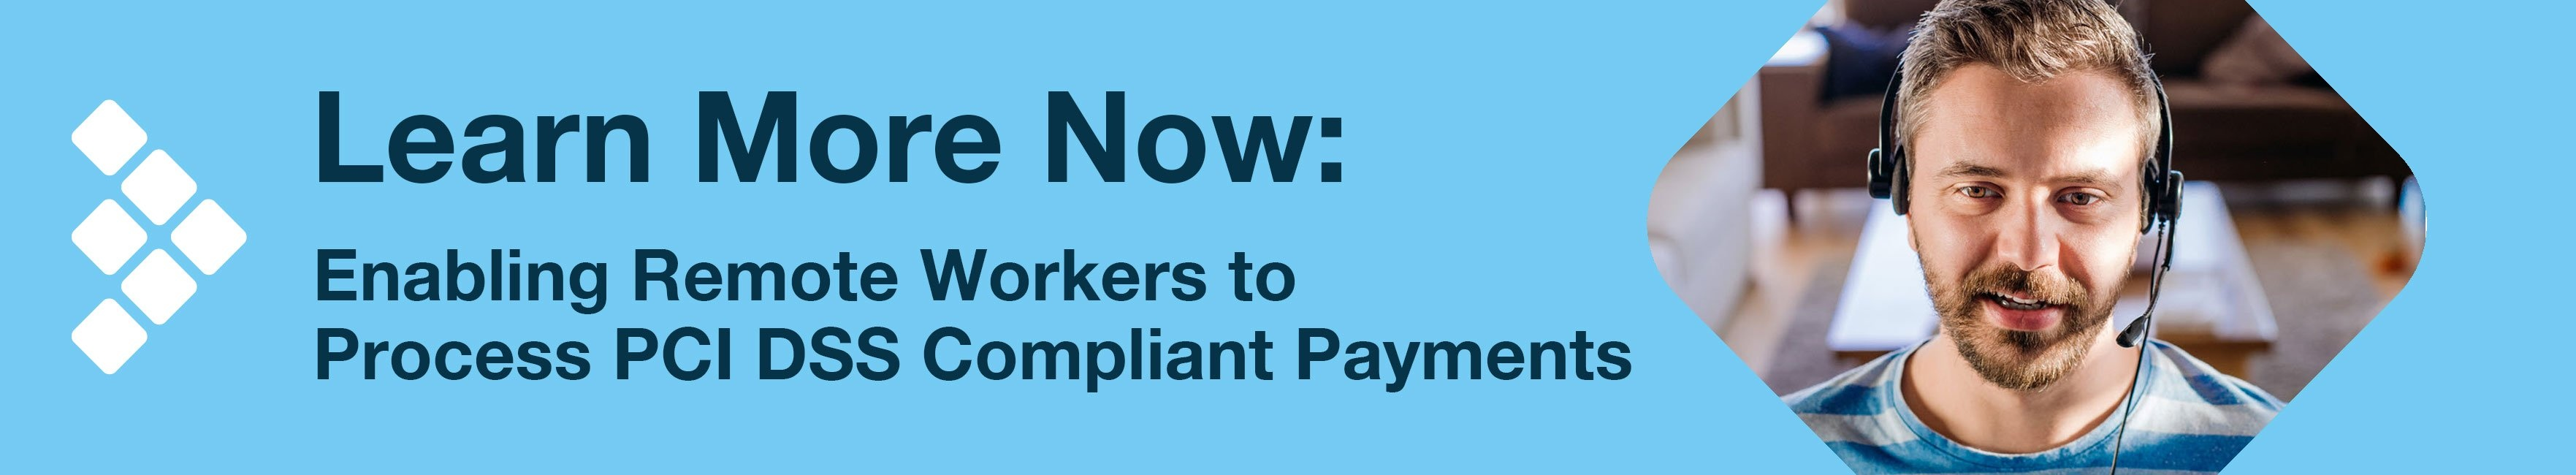 Learn More Now: Enabling Remote Workers to Process PCI DSS Compliant Payments